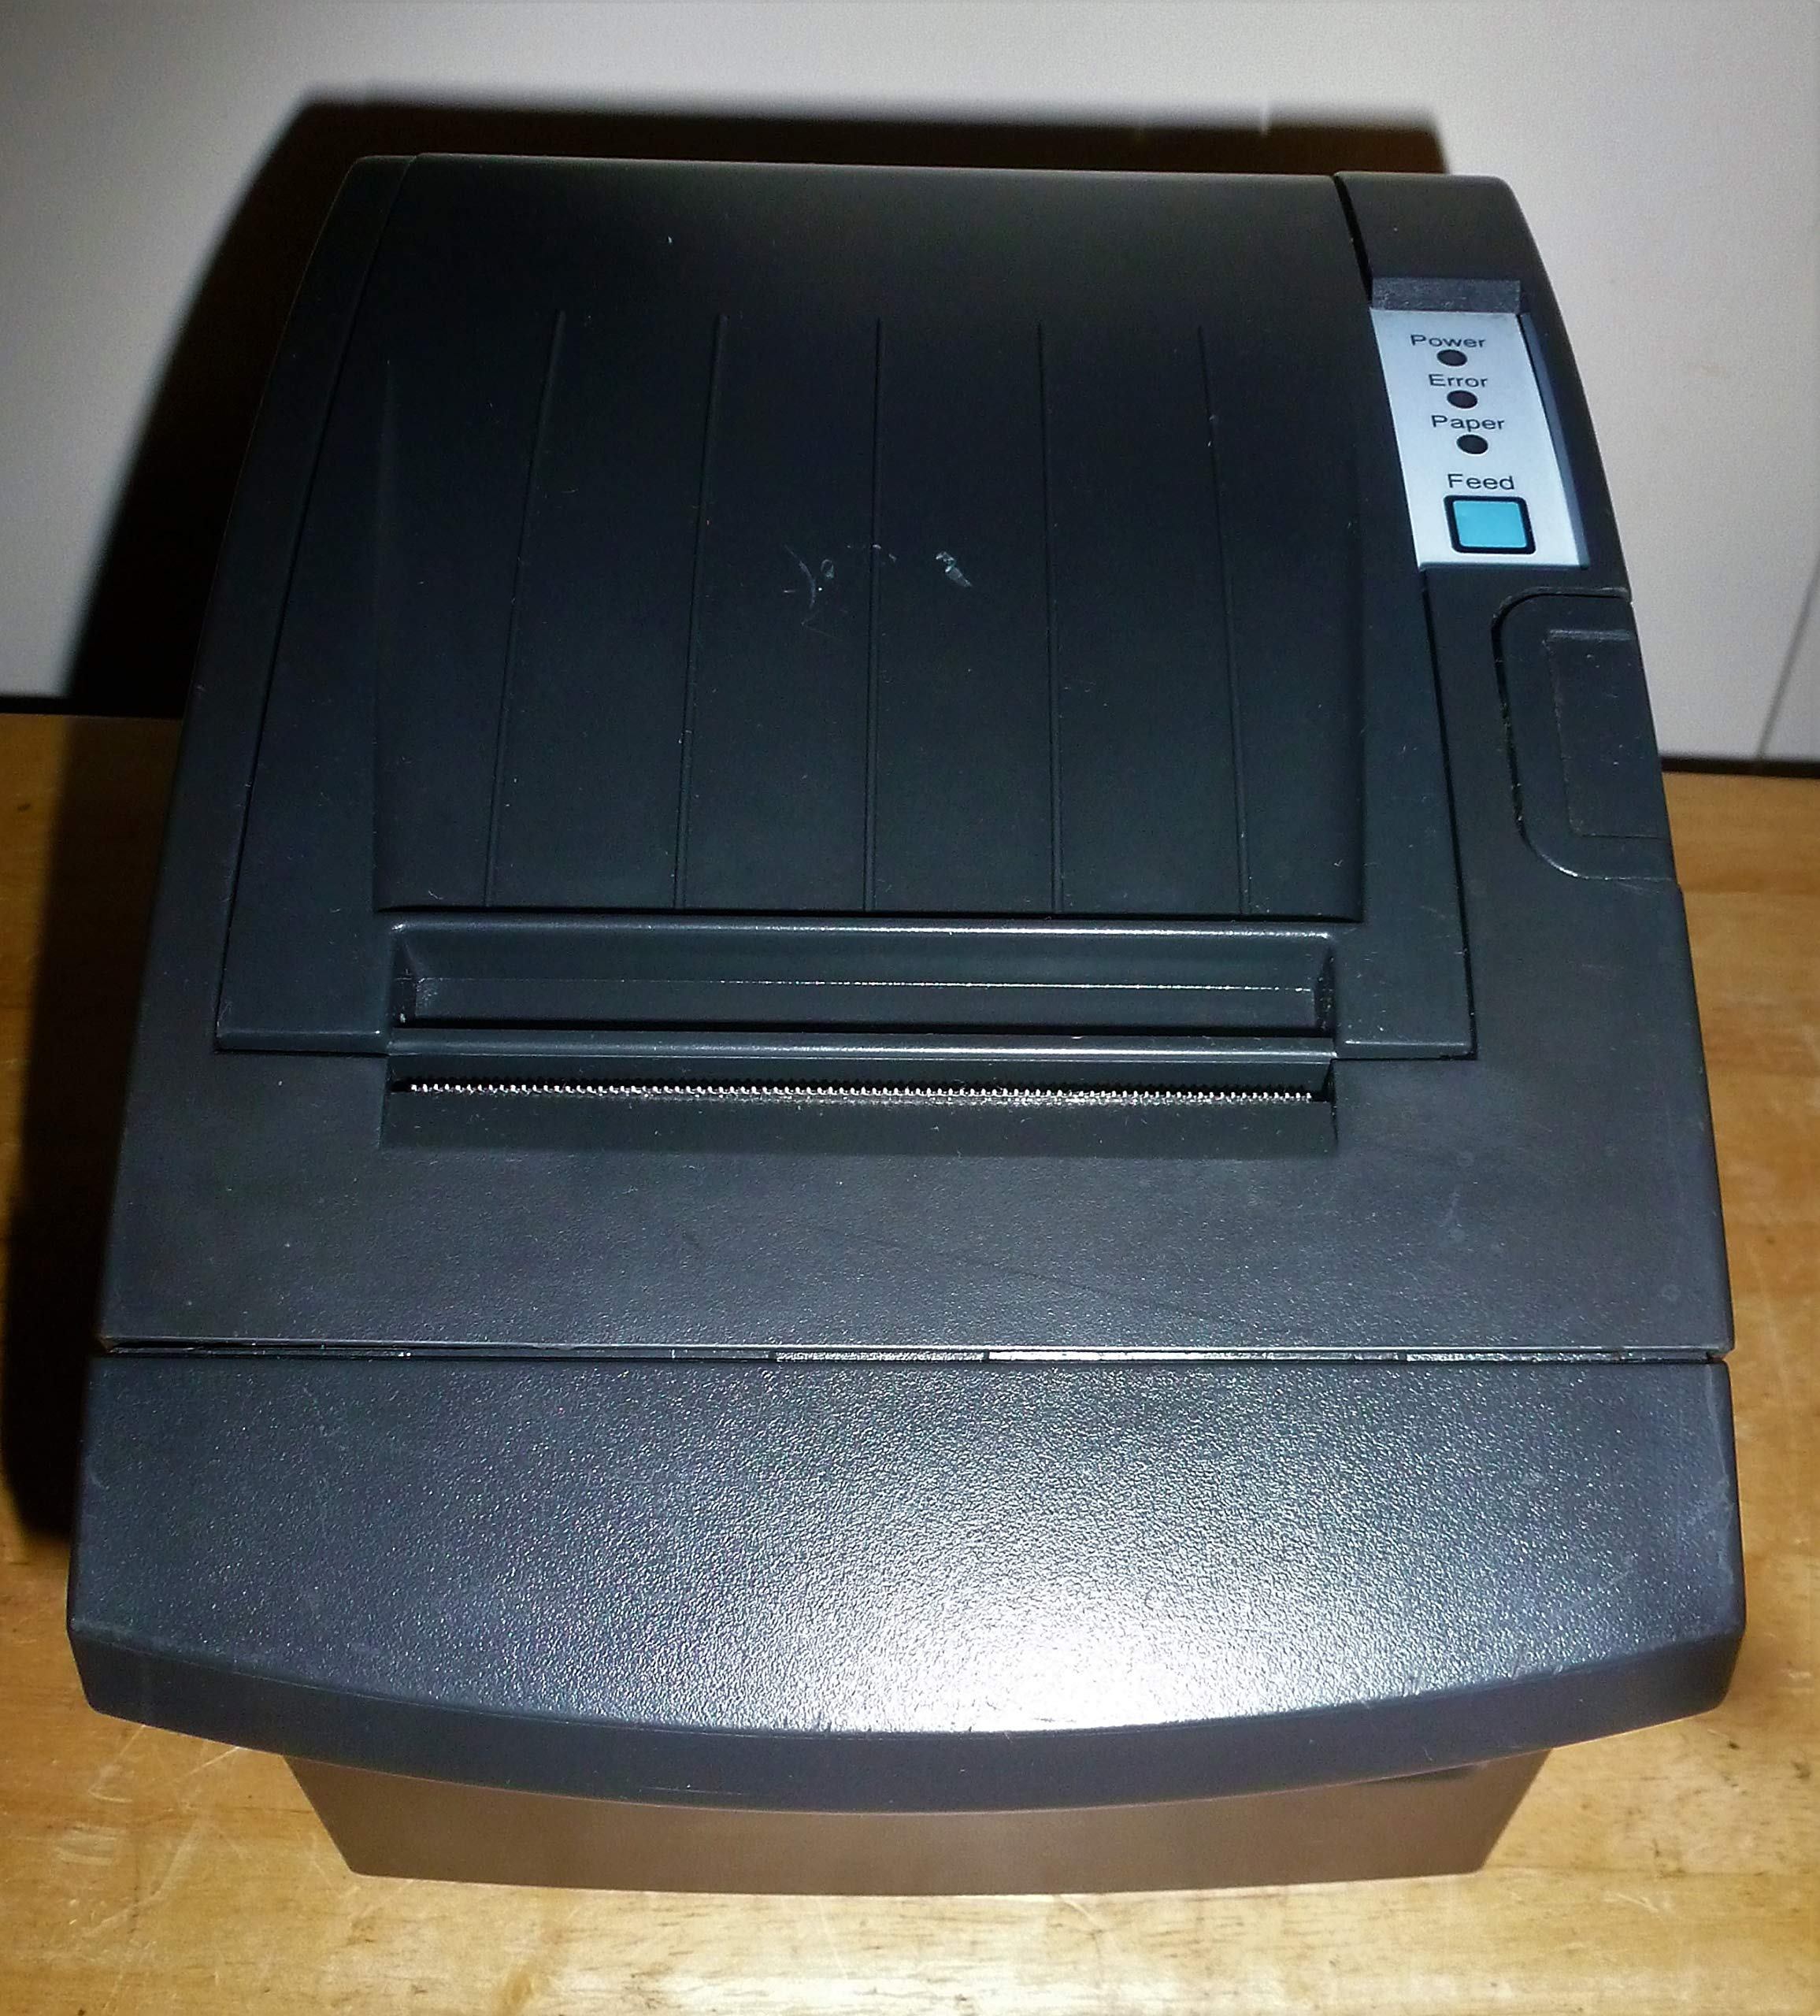 Bixolon SRP-350PLUSIIICOSG Thermal Printer with Power Supply and USB Cable, Serial/USB/Ethernet, Black by BIXOLON (Image #1)